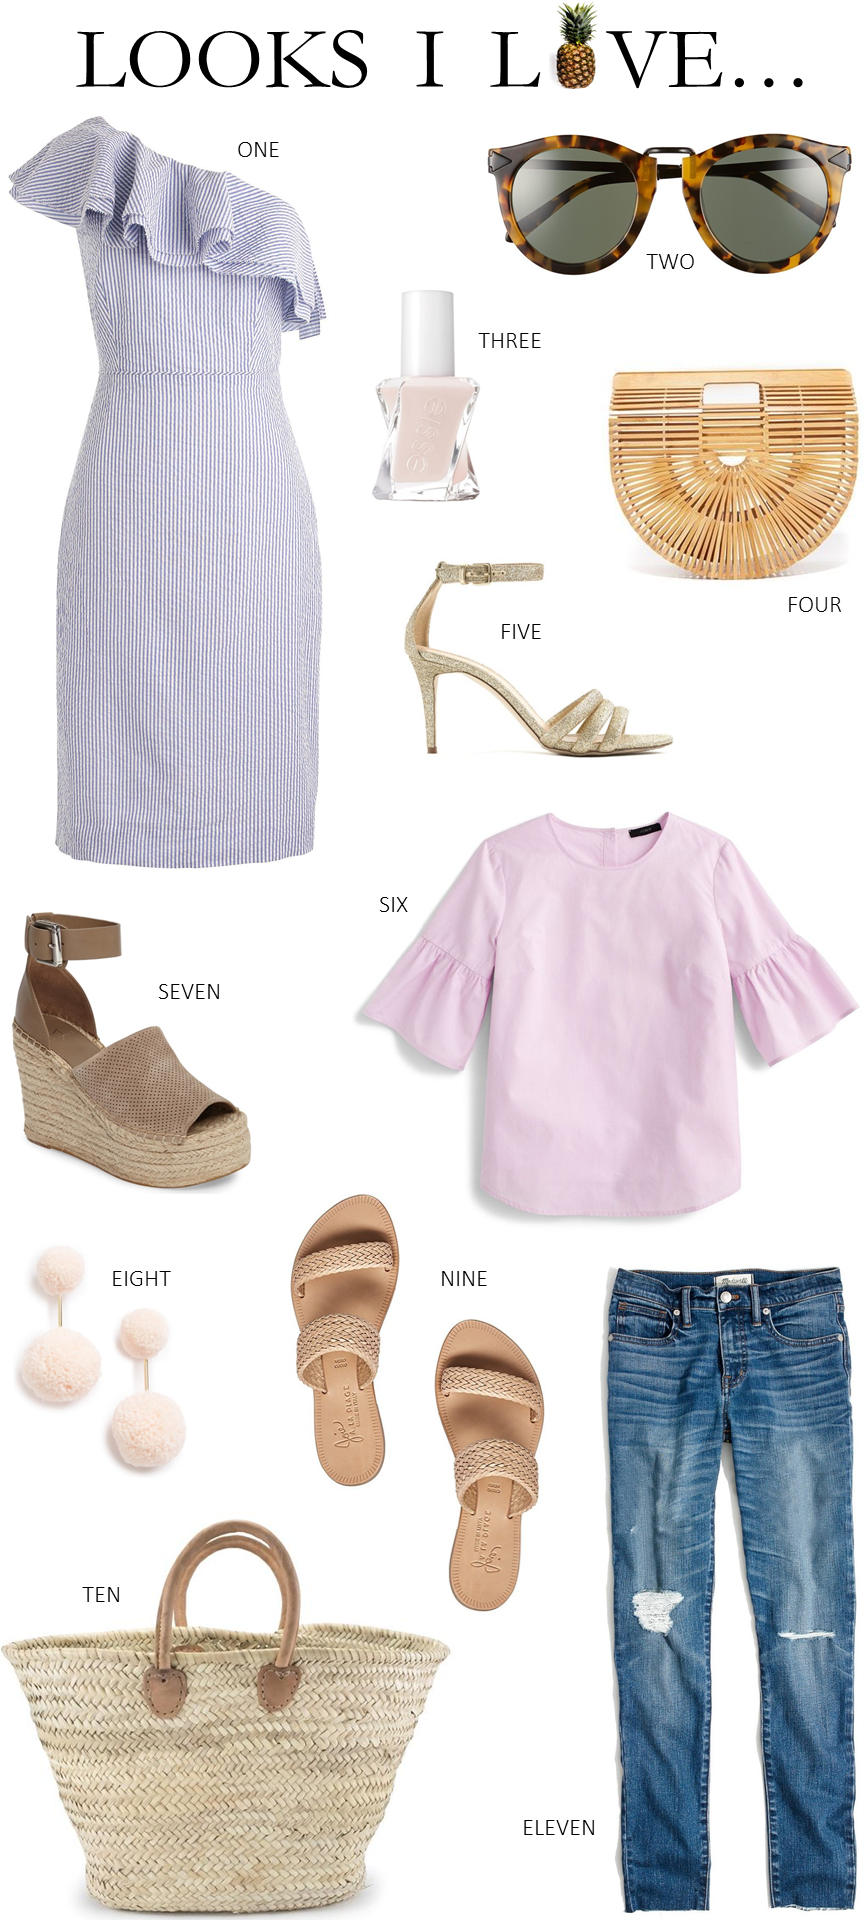 Looks I Love Summer Vacation Outfit Ideas Beautifully